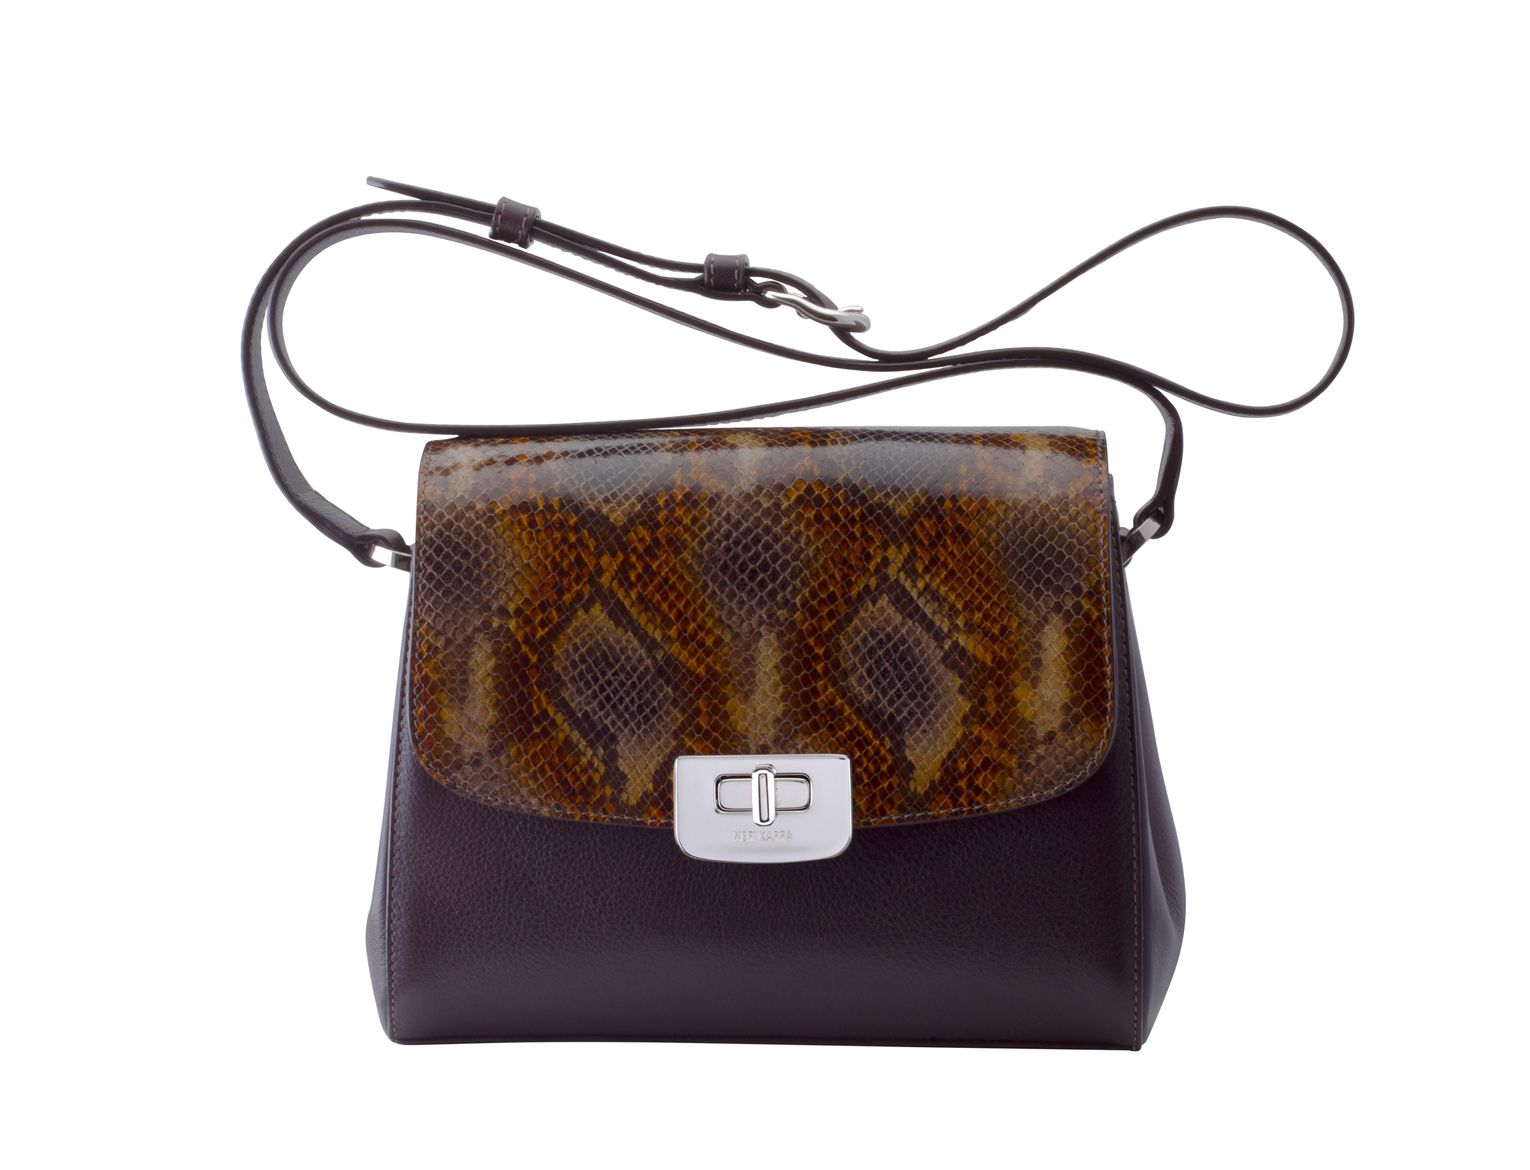 Sofia bag is a sporty–elegant bag, for women of all ages and styles. Designed to be compact but at the same time its inner compartments can easily carry ladies' everyday essentials. Enjoy wearing it comfortably on your shoulder or cross body. Make your choice among duo-tone combinations and animal prints.